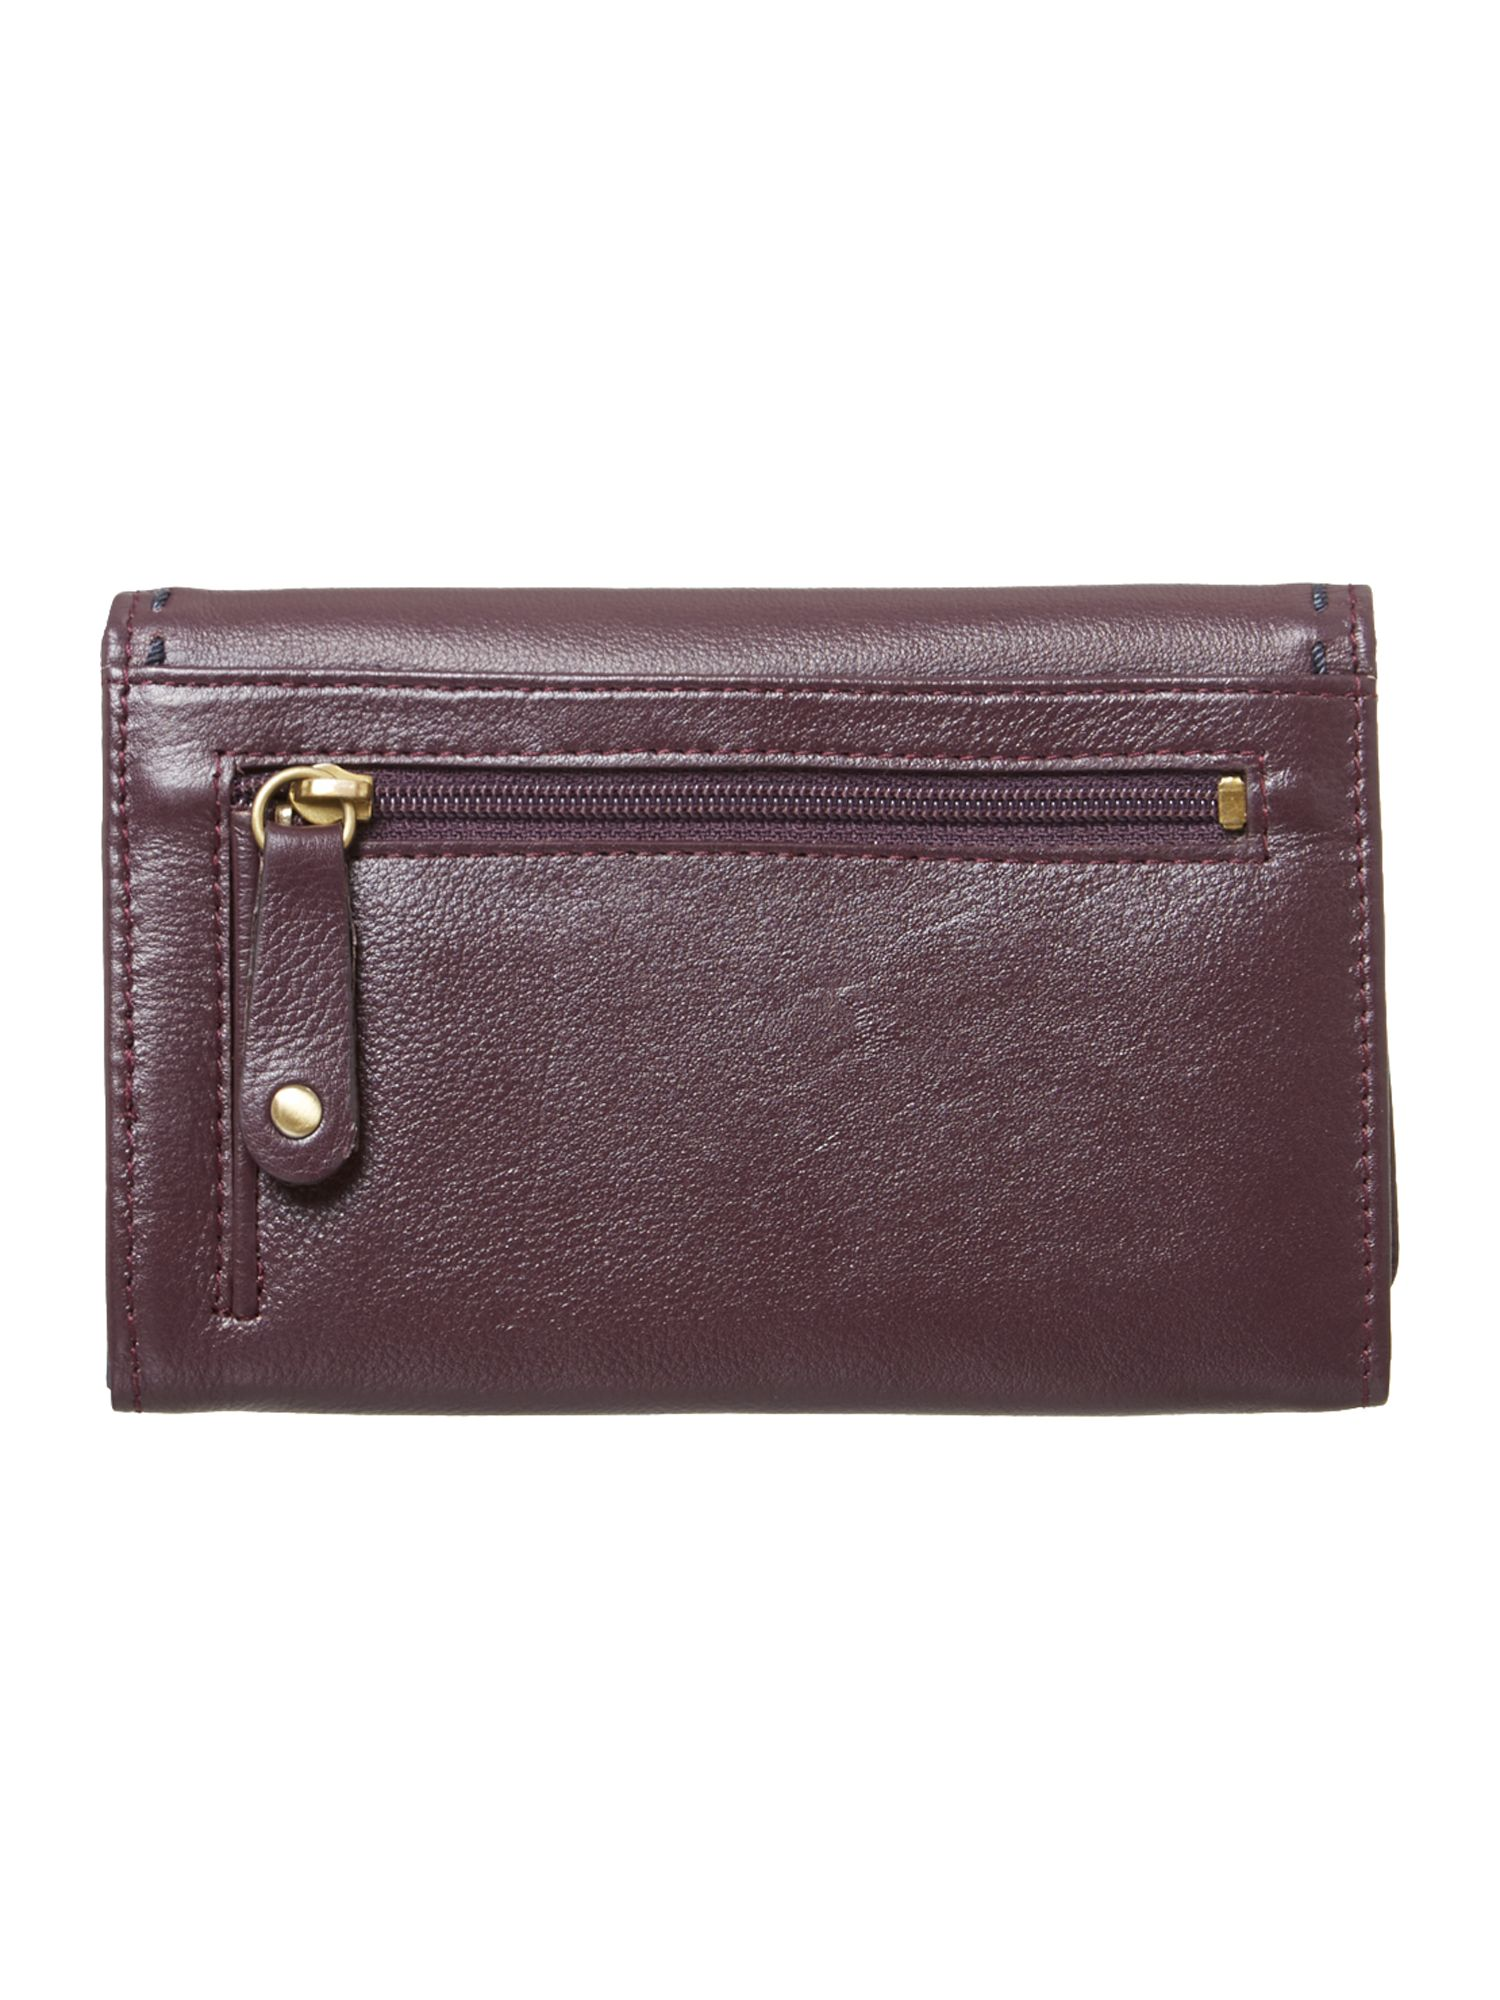 Poppy medium flapover purse